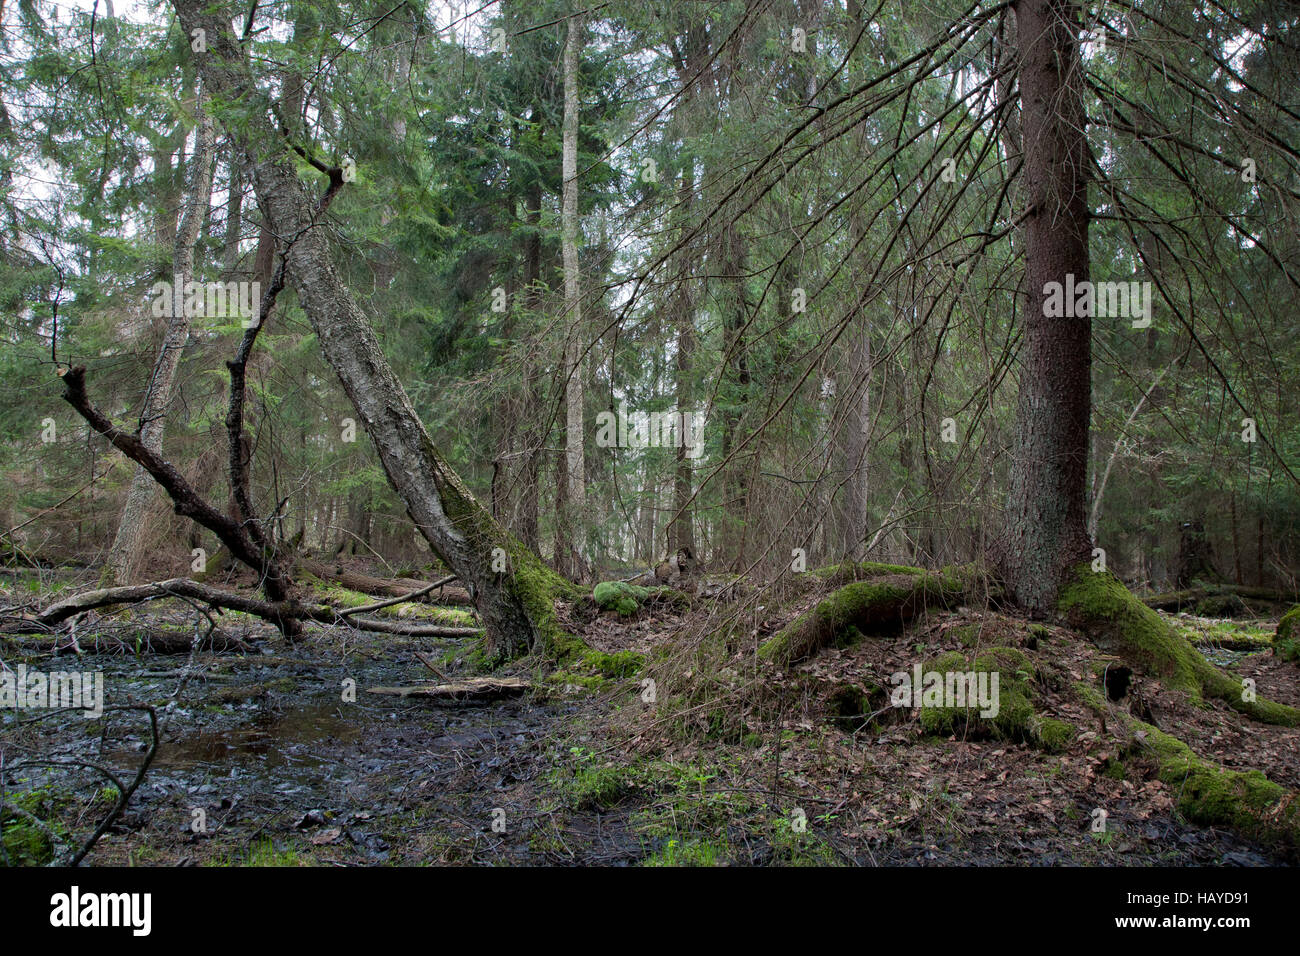 Wet coniferous stand in spring with spruce tree next to waterhole,Bialowieza Forest,Poland,Europe - Stock Image